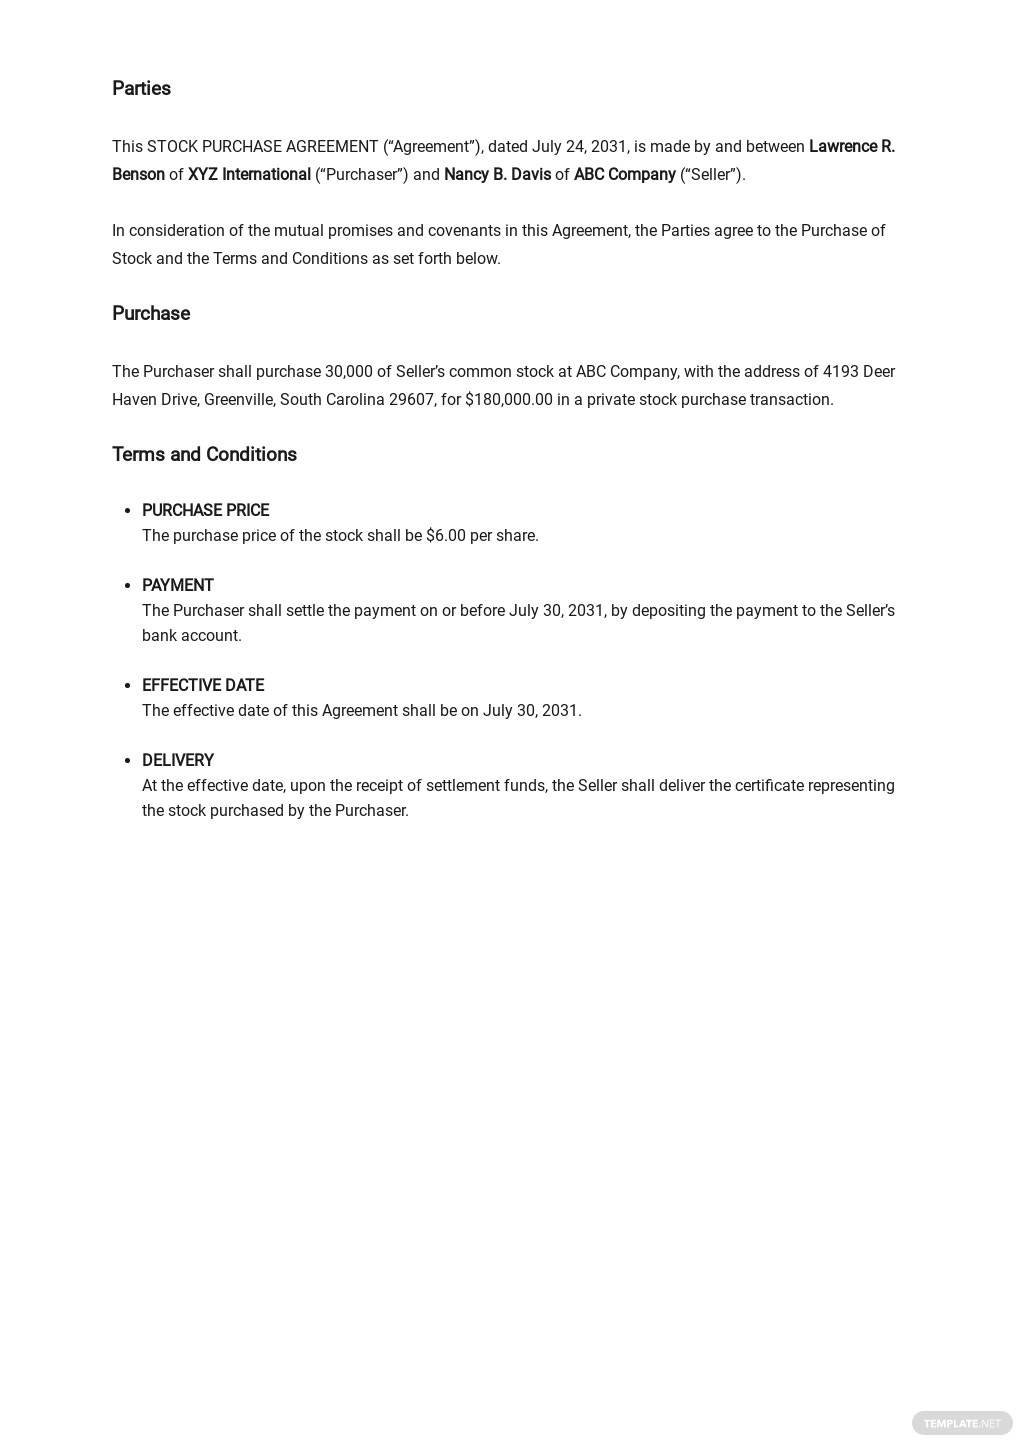 Stock Purchase Agreement Template 1.jpe